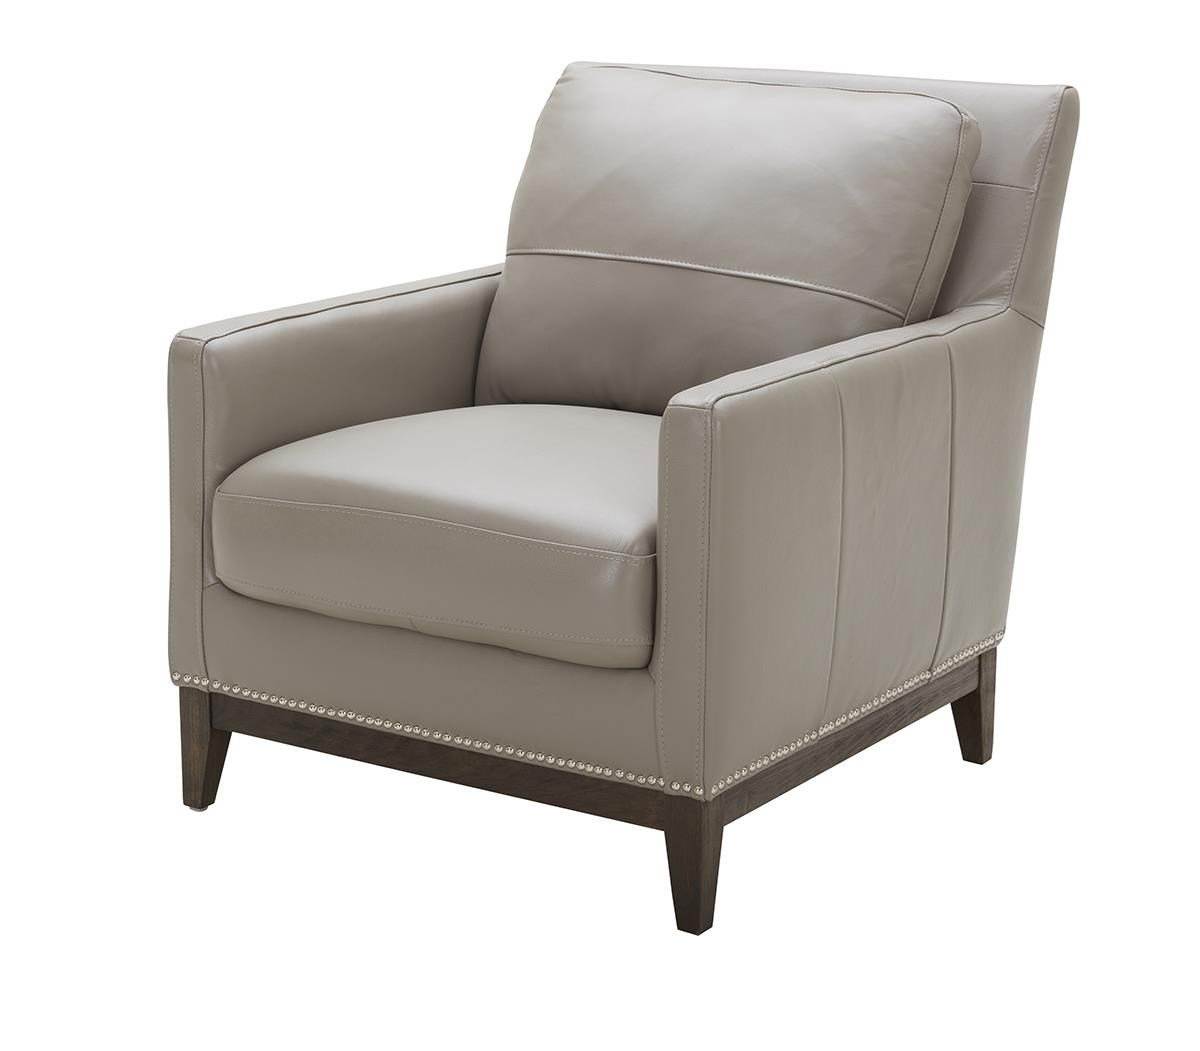 Urban Evolution Grandin Tufted Leather Chair | Belfort Furniture With Regard To Grandin Leather Sofa Chairs (Image 20 of 20)